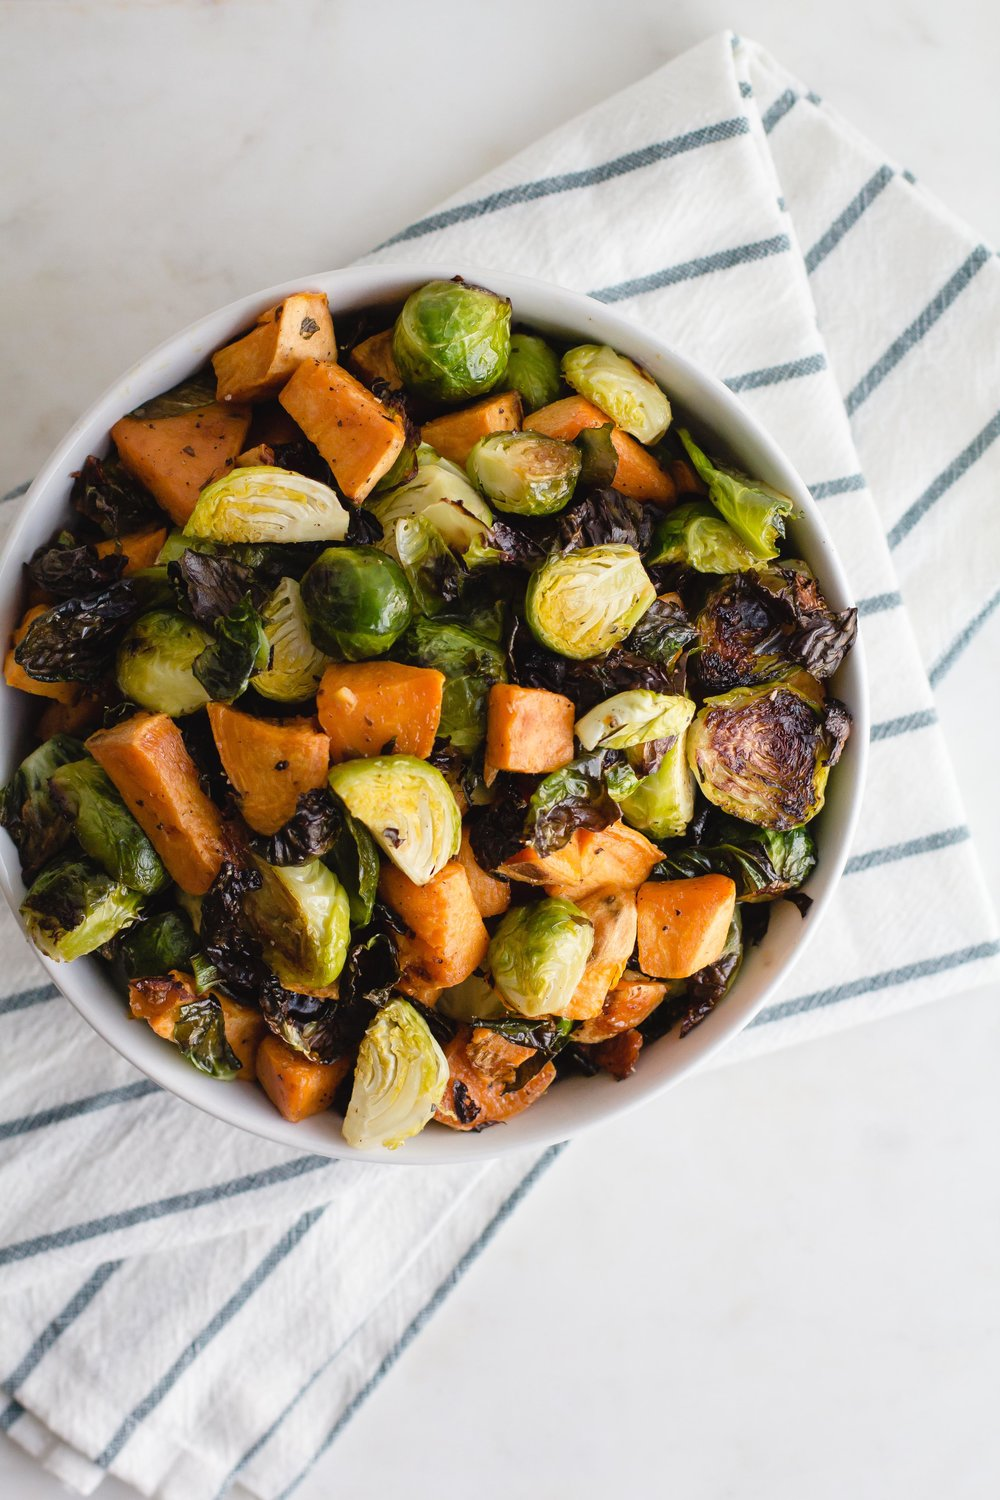 Maple Roasted Sweet Potatoes + Brussels Sprouts | Sarah J. Hauser #sides #dinner #paleo #easyweeknight